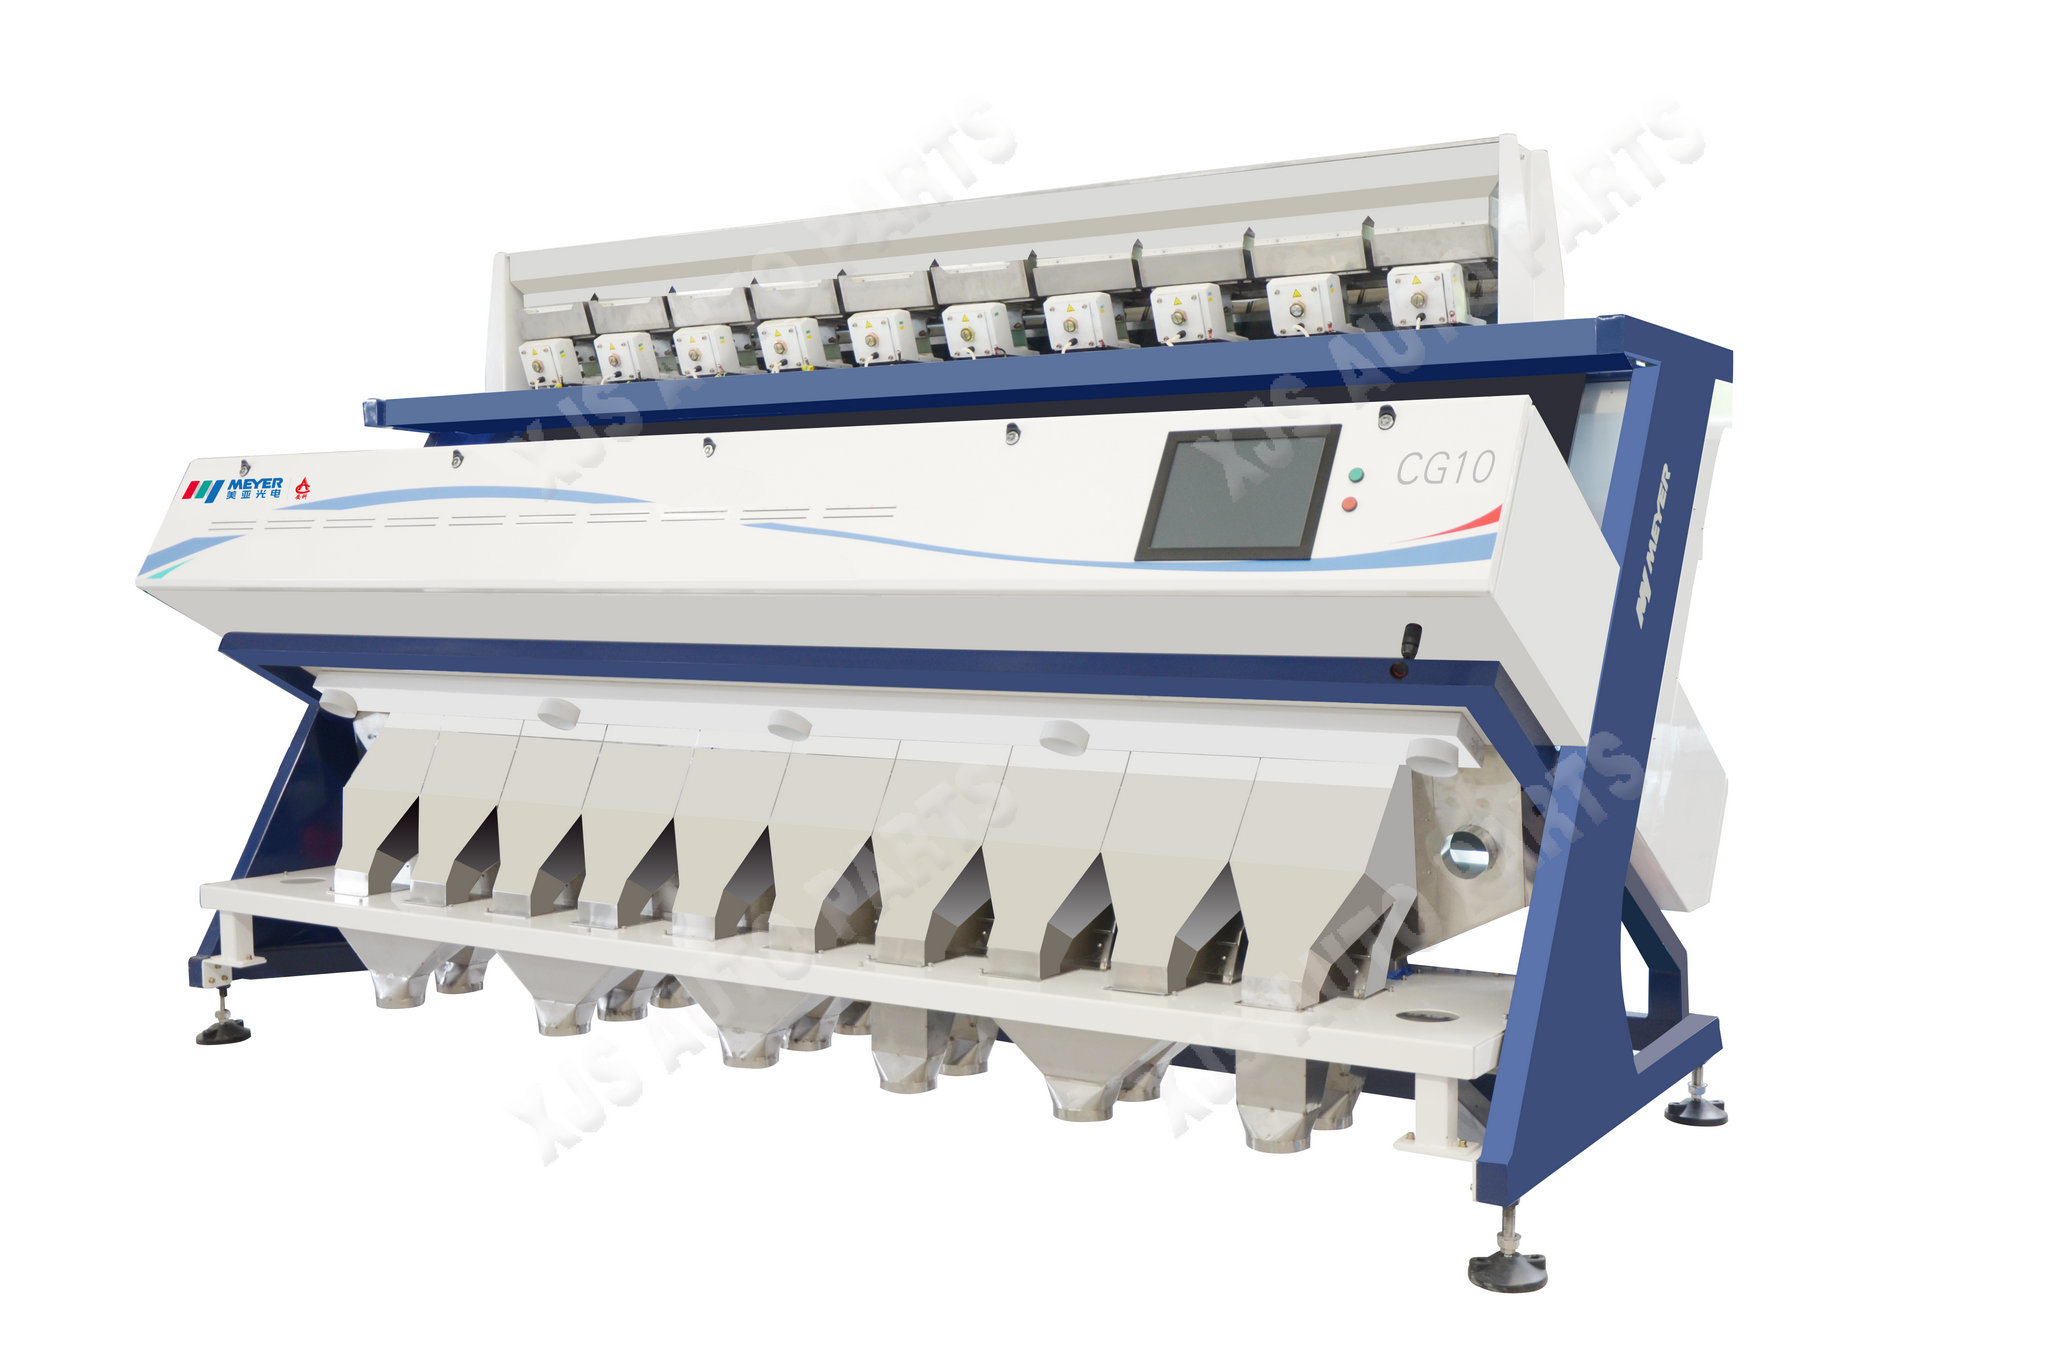 China Meyer Color Sorter Sorting Machine Model Cg6 for Rice Grain Cereal  Coffee Bean - China Meyer Cg6, Color Sorting Machine